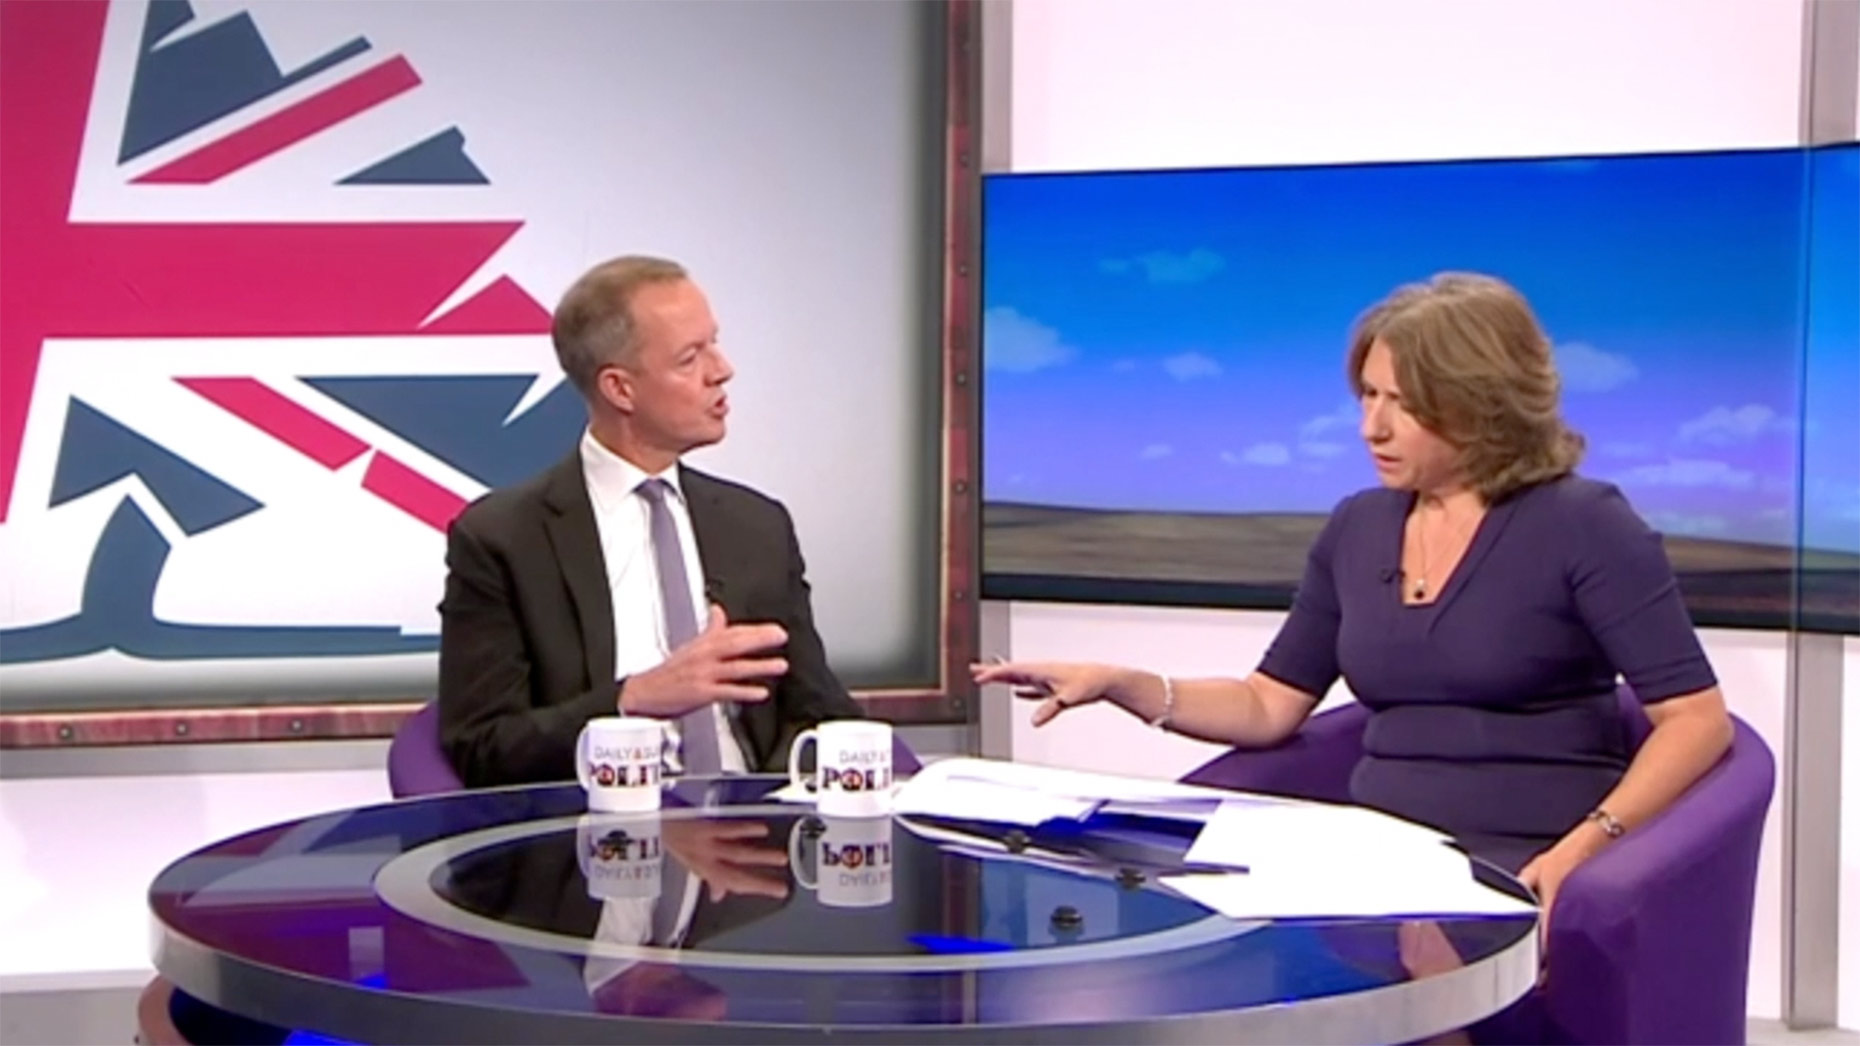 Boles was unhappy at some of the questions being asked. Photo: BBC